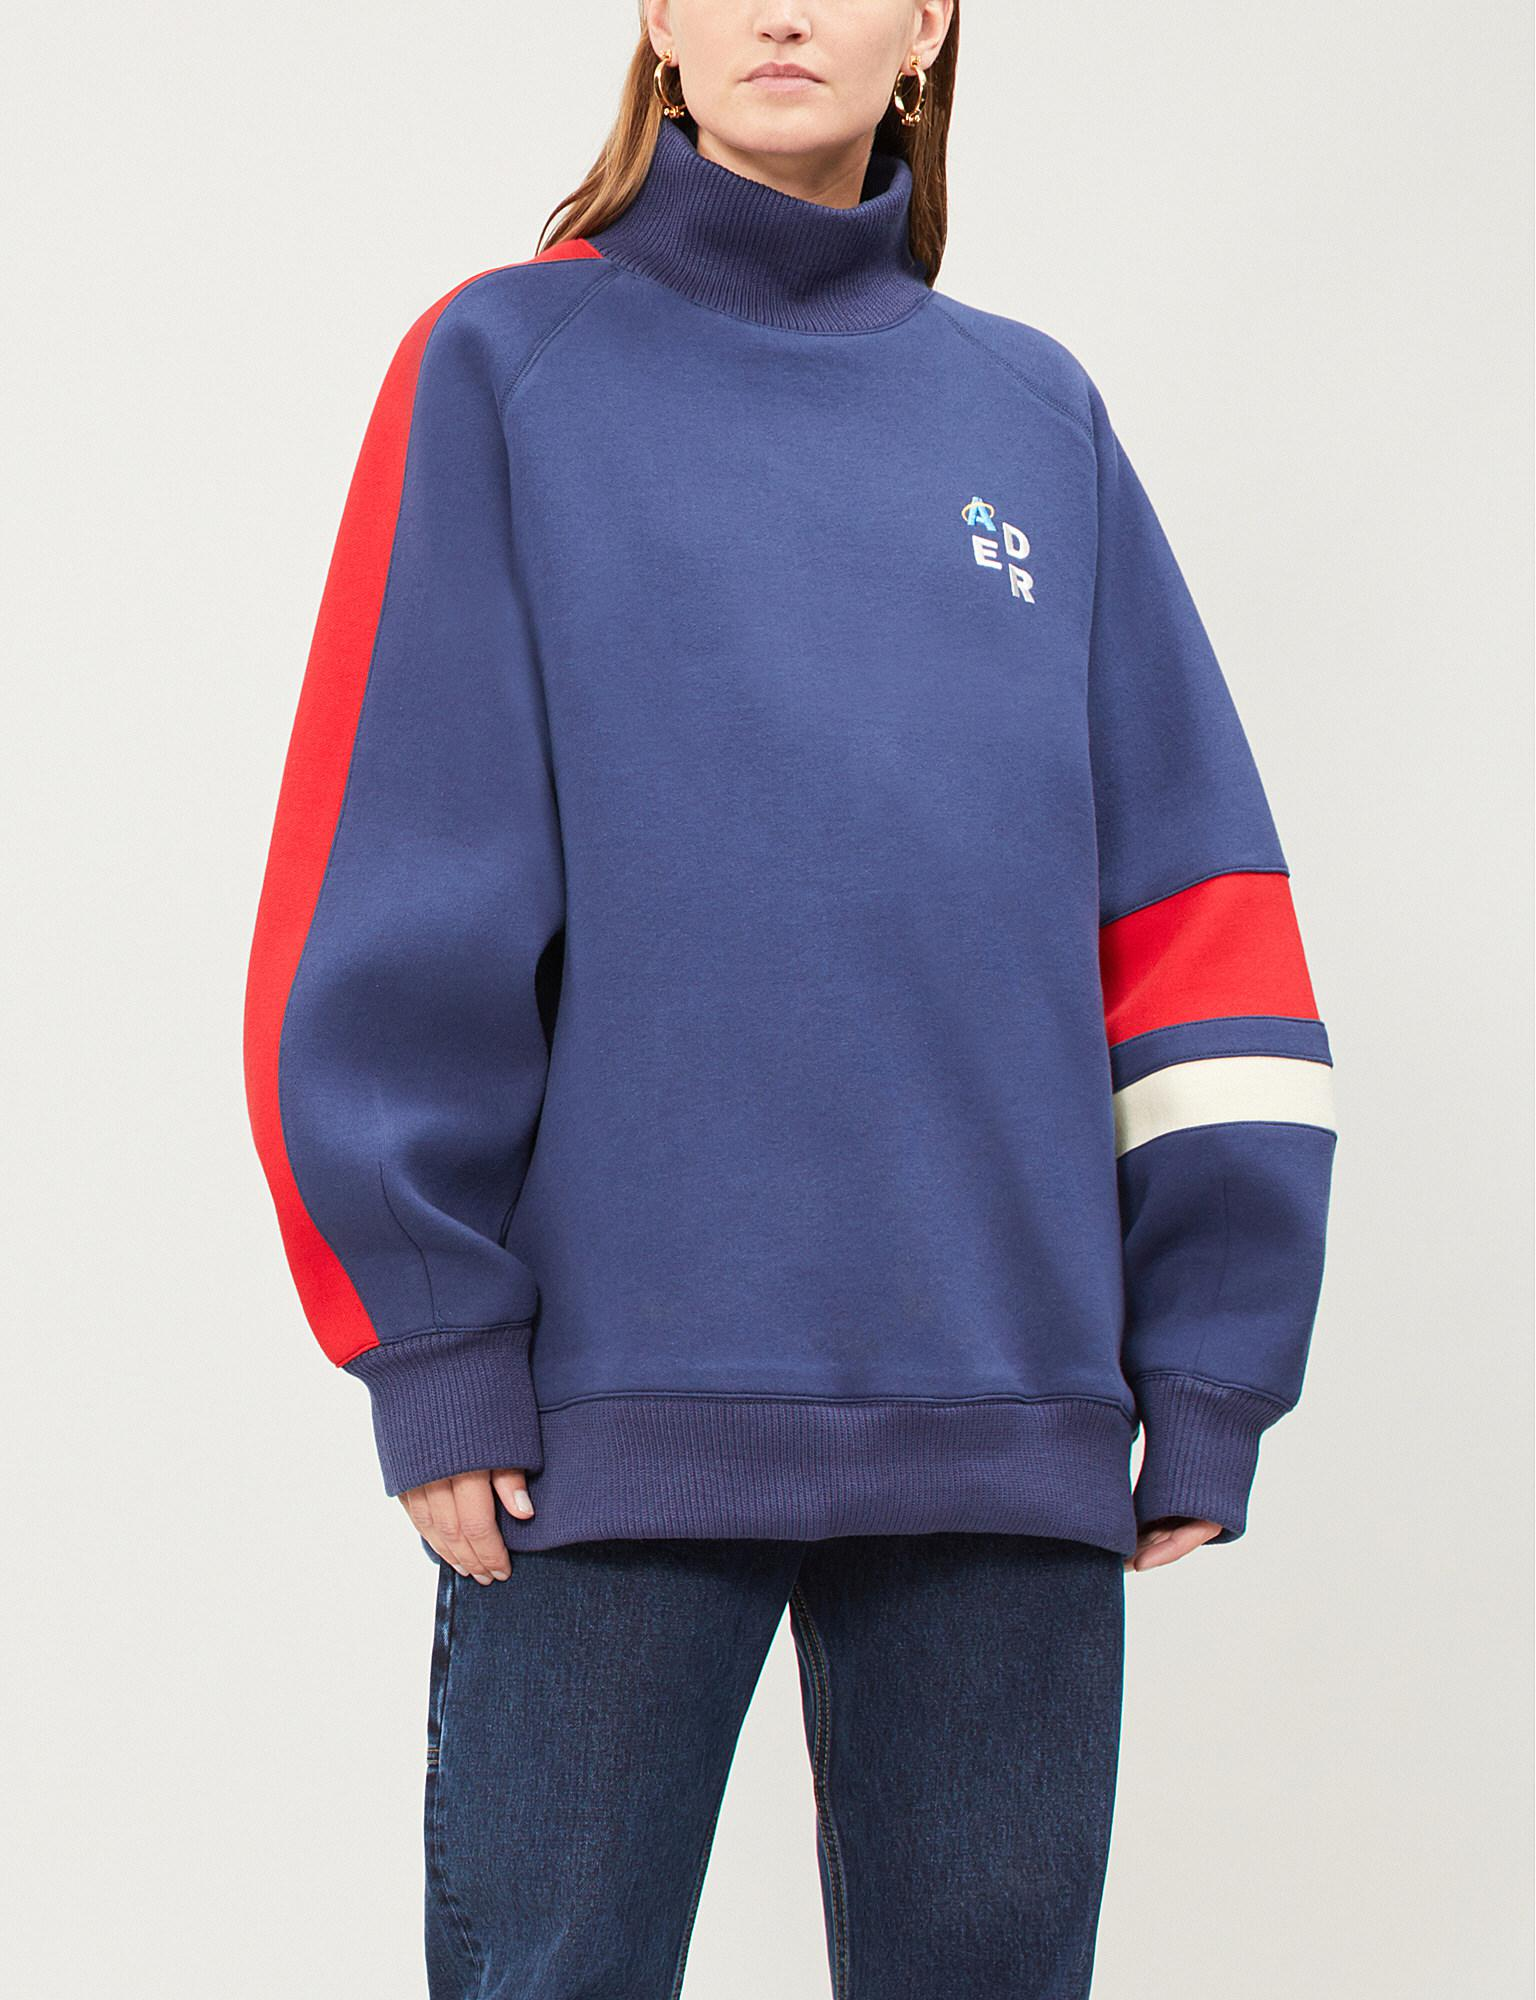 ADER error Oversized Cotton-jersey Sweatshirt in Blue - Lyst 62b1de26b